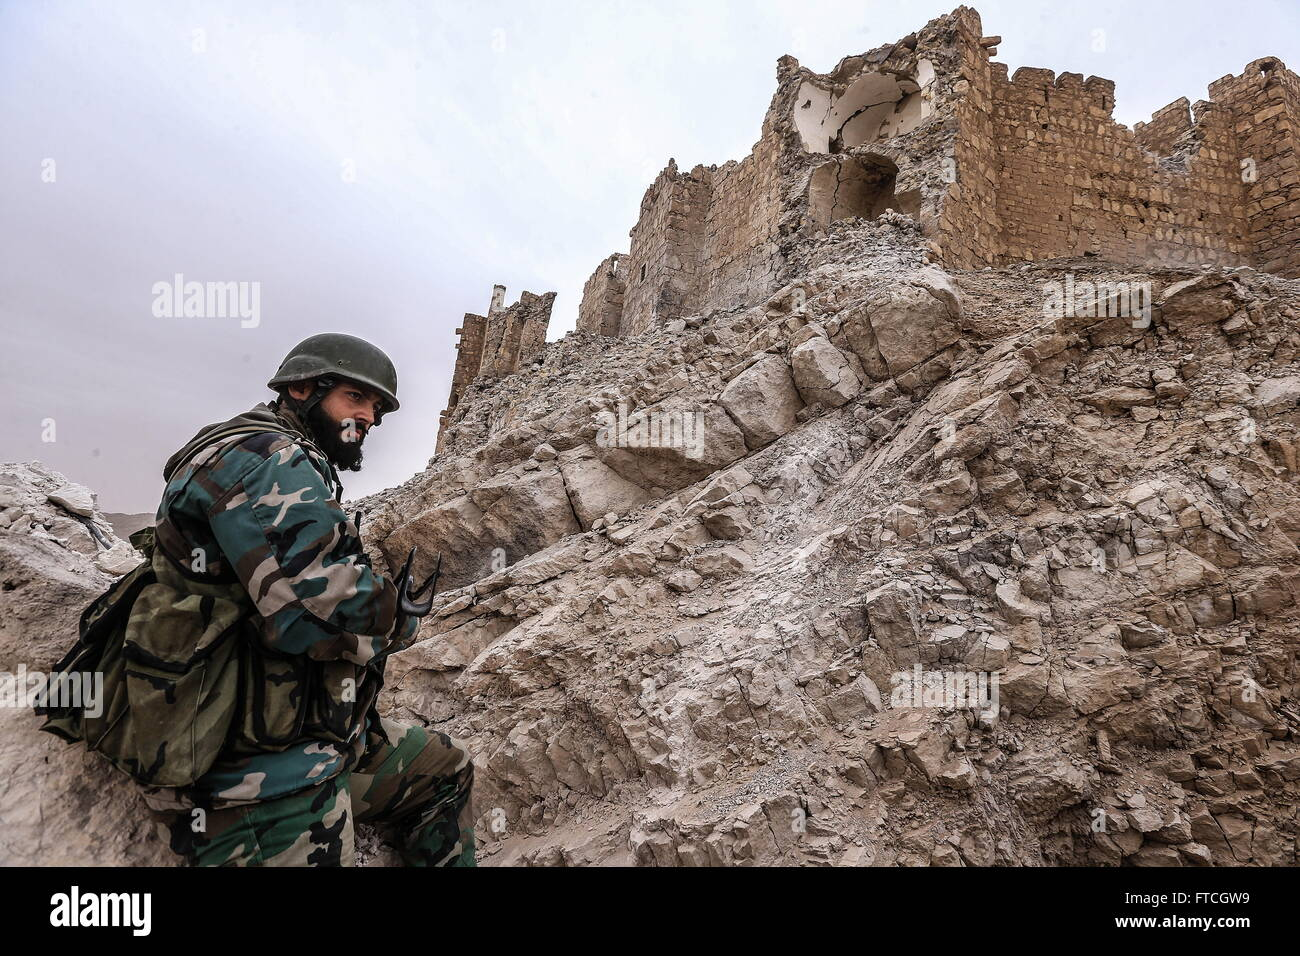 Palmyria, Syria. 26th Mar, 2016. A soldier of the Syrian government army near Fakhr al-Din al-Maani Citadel in Palmyra, - Stock Image